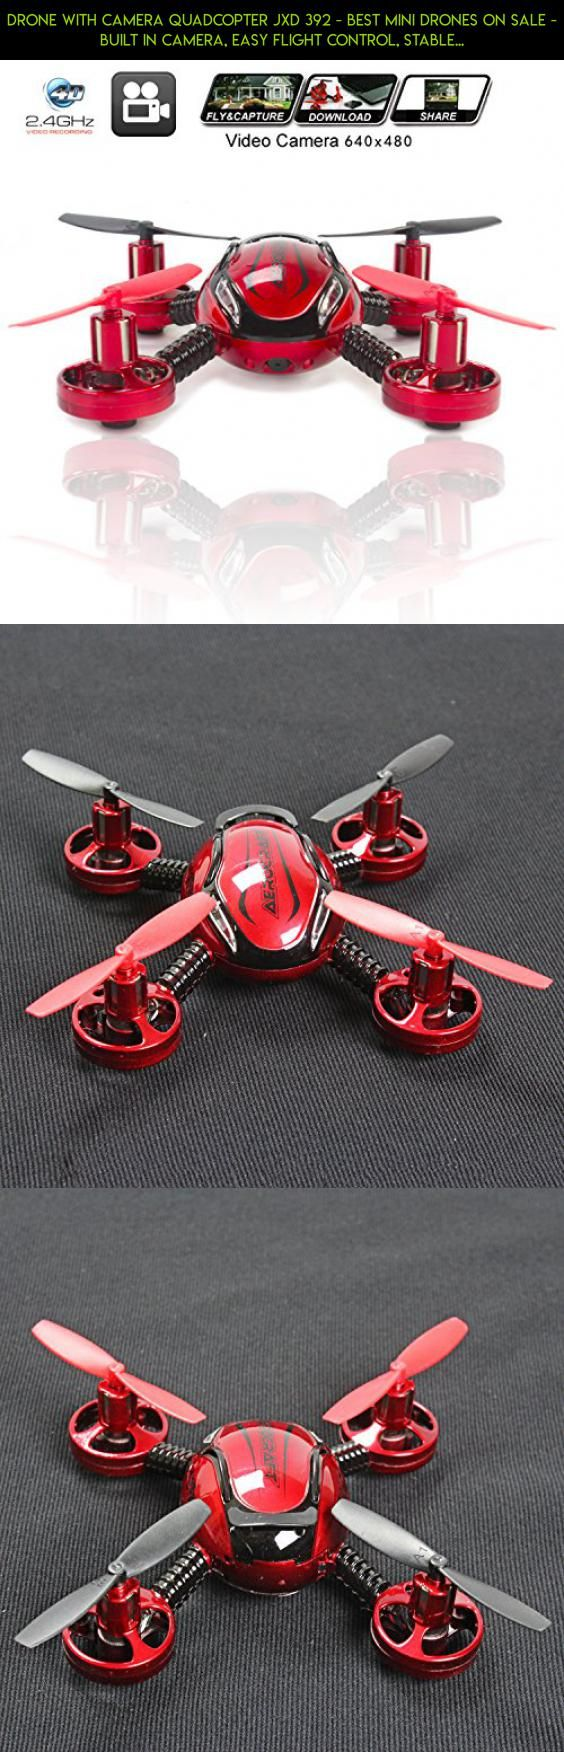 Drone with Camera Quadcopter JXD 392 - Best Mini Drones on sale - Built in Camera, Easy Flight Control, Stable Landing, Fast Response Remote, 4GB SD Card & Reader - KiiToys® USA Warranty #plans #kit #products #battery #external #gadgets #tech #fpv #camera #technology #shopping #parrot #drone #parts #racing #charger